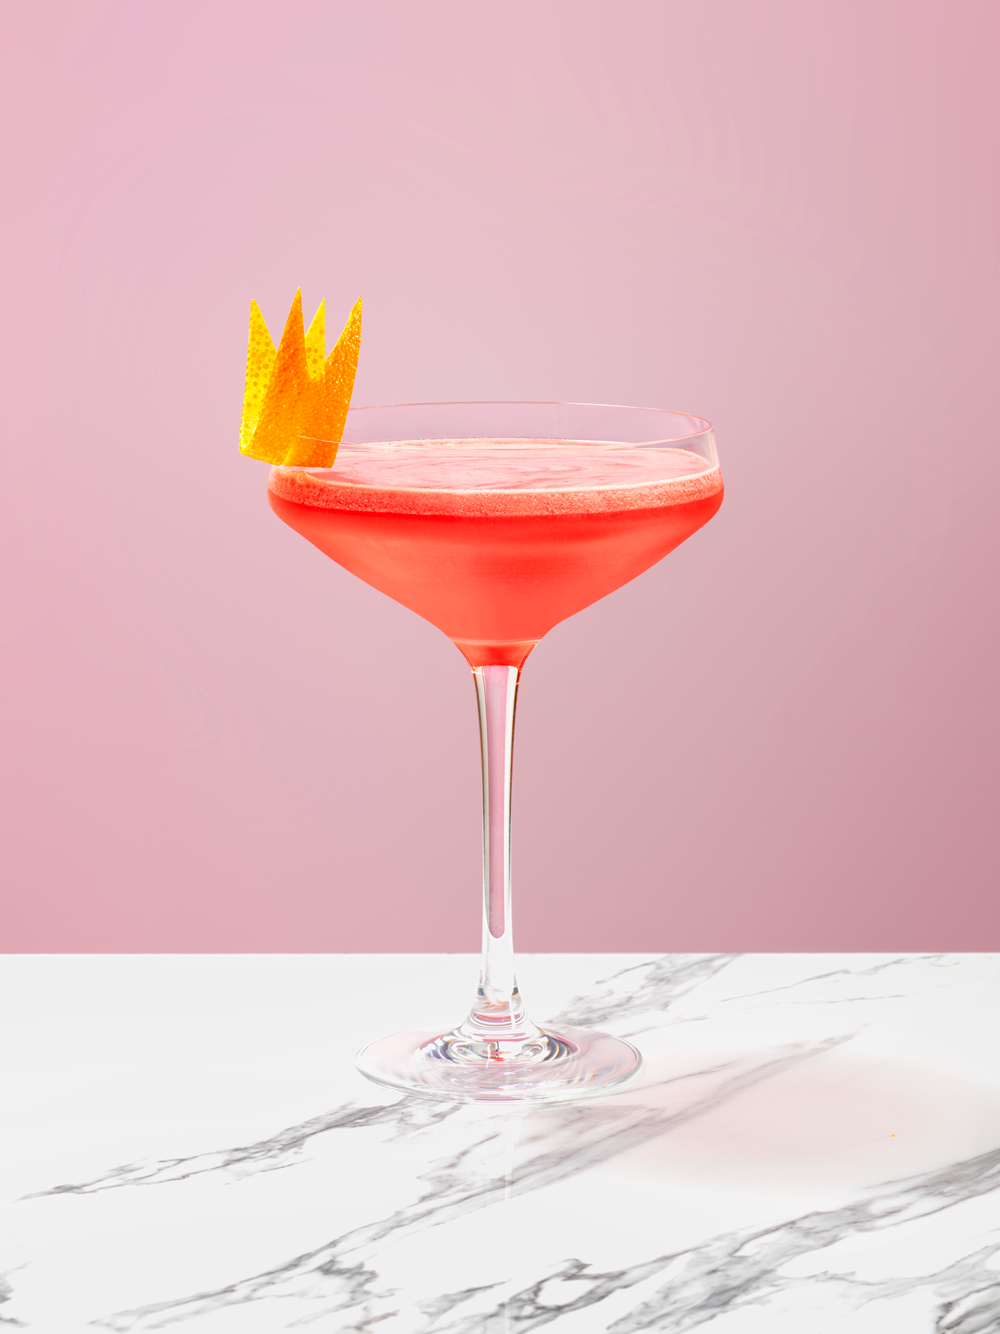 Cosmopolitan - So much more than you expect. This is bigger and bolder.